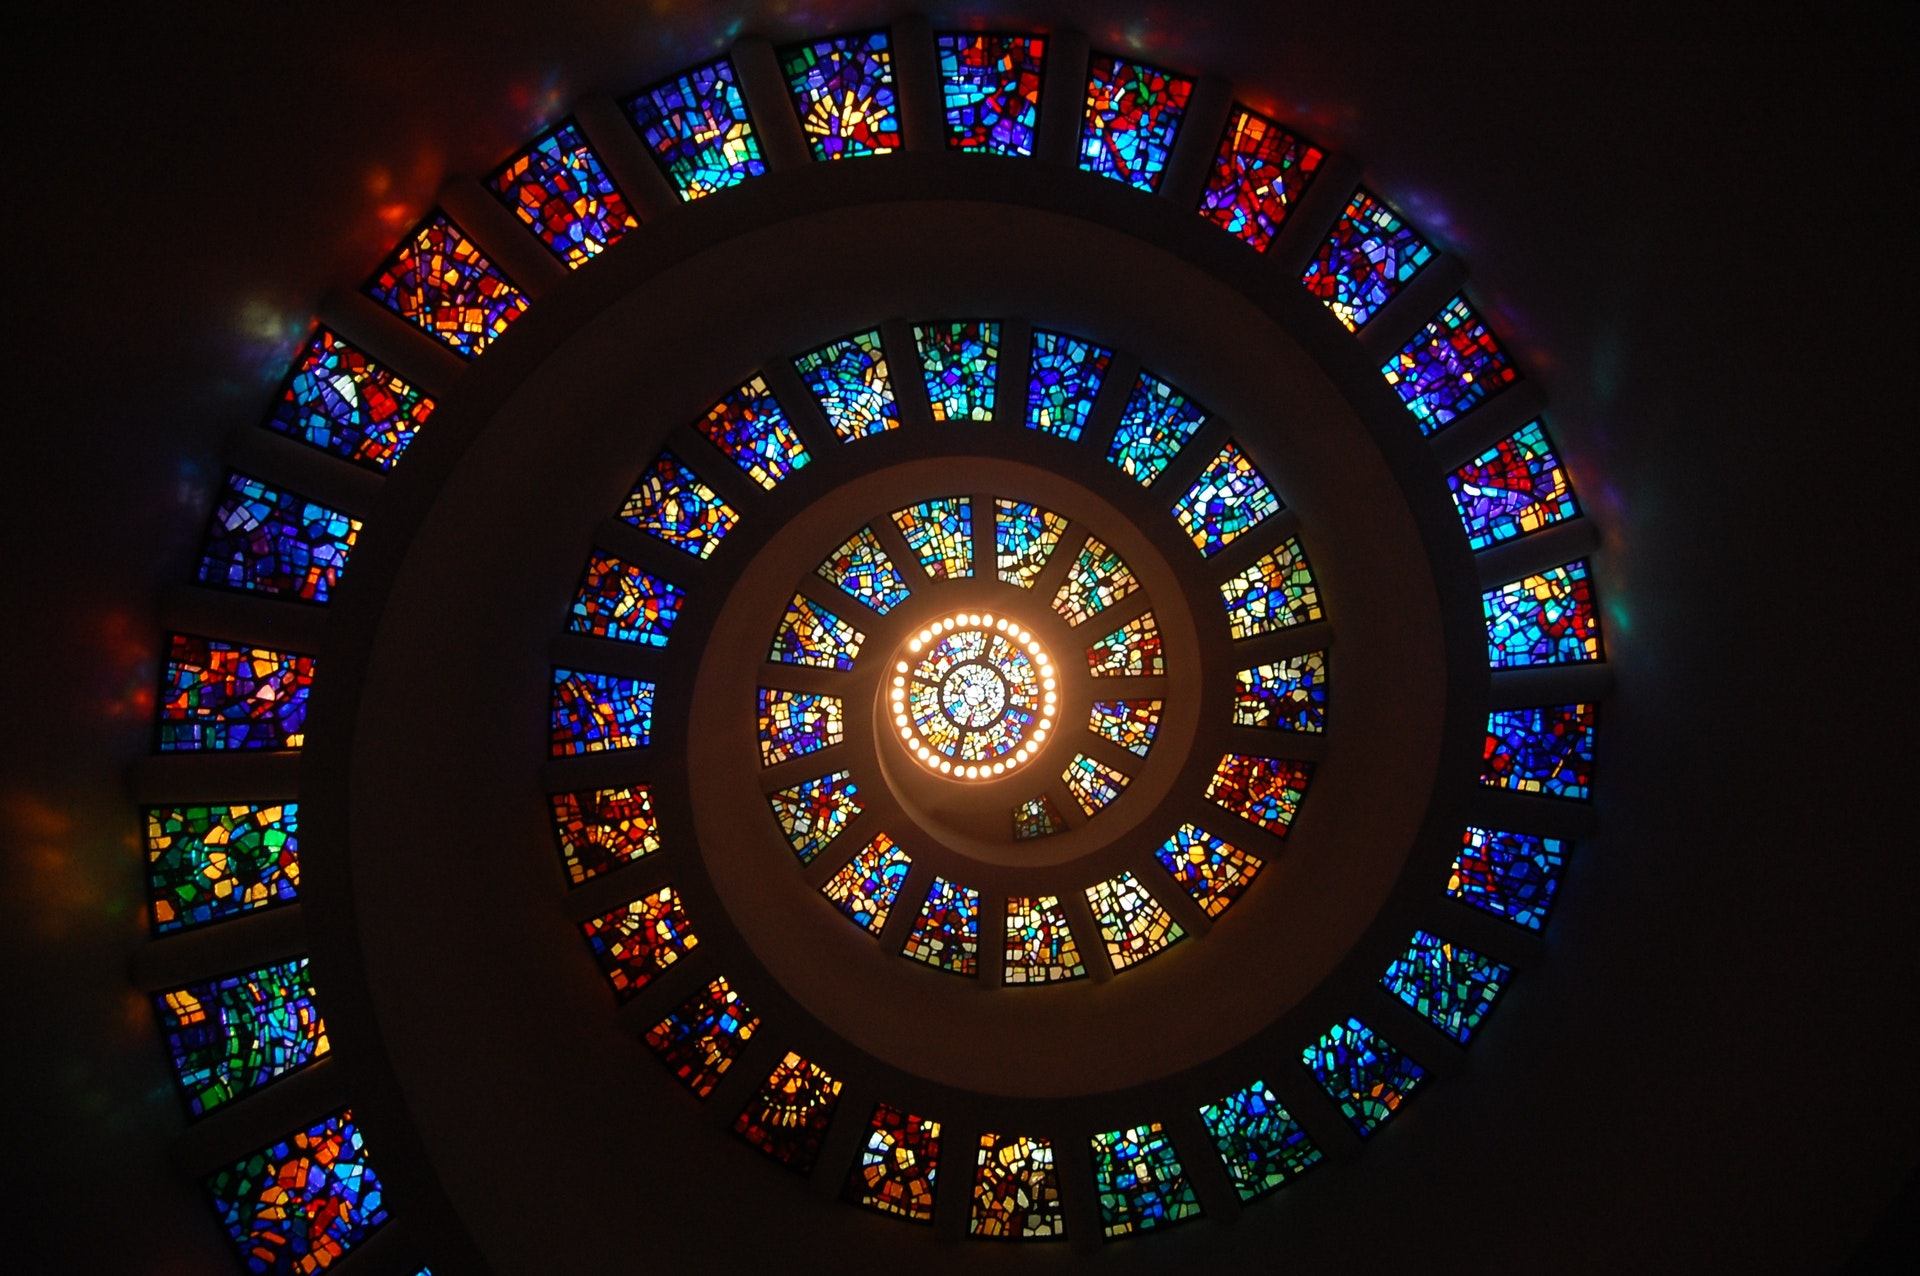 worms-eye-view-of-spiral-stained-glass-decors-through-the-161154